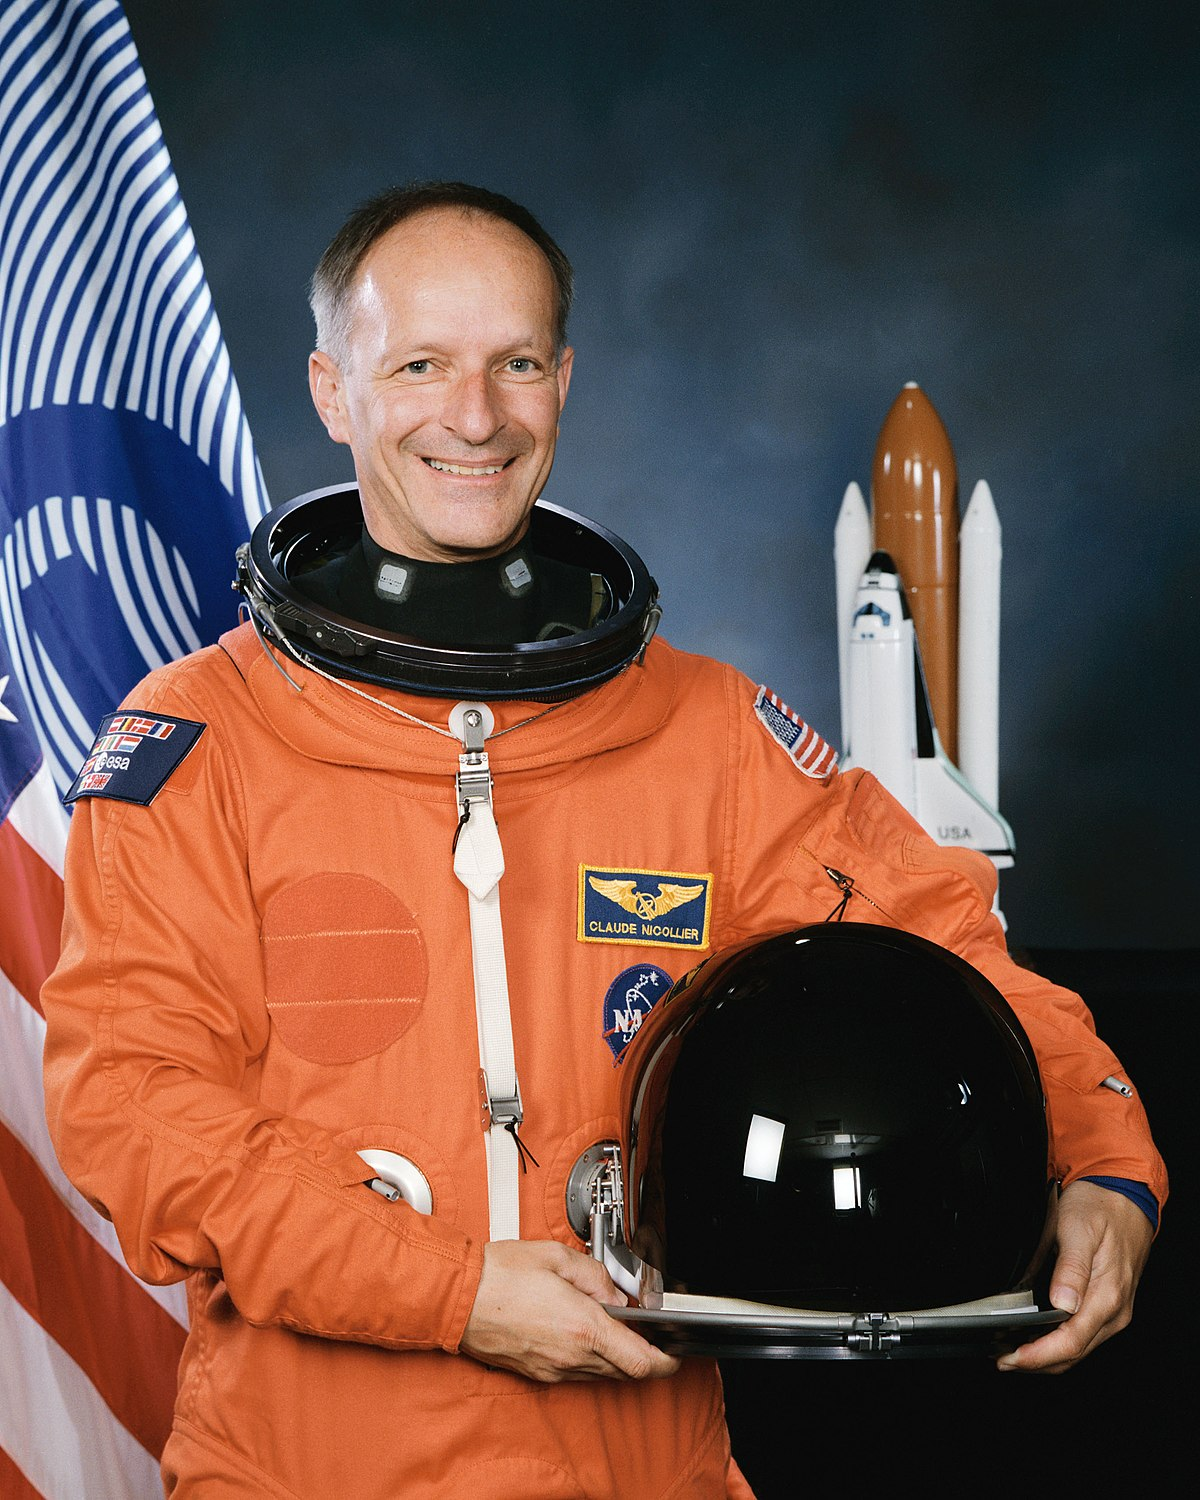 Images of Important People From Nasa - #SpaceHero